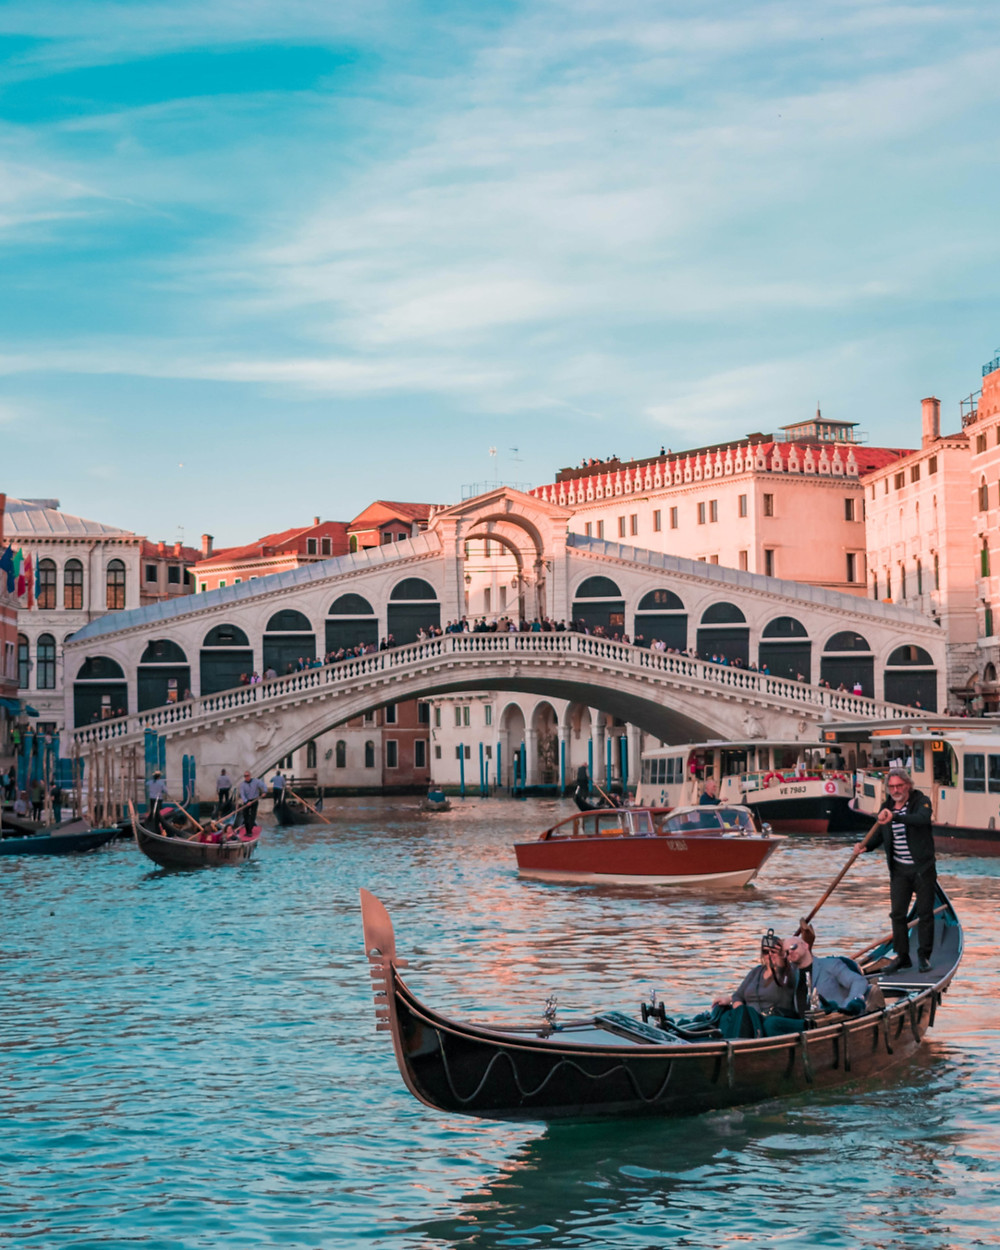 Tourists on a gondola in Venice near the Rialto Bridge